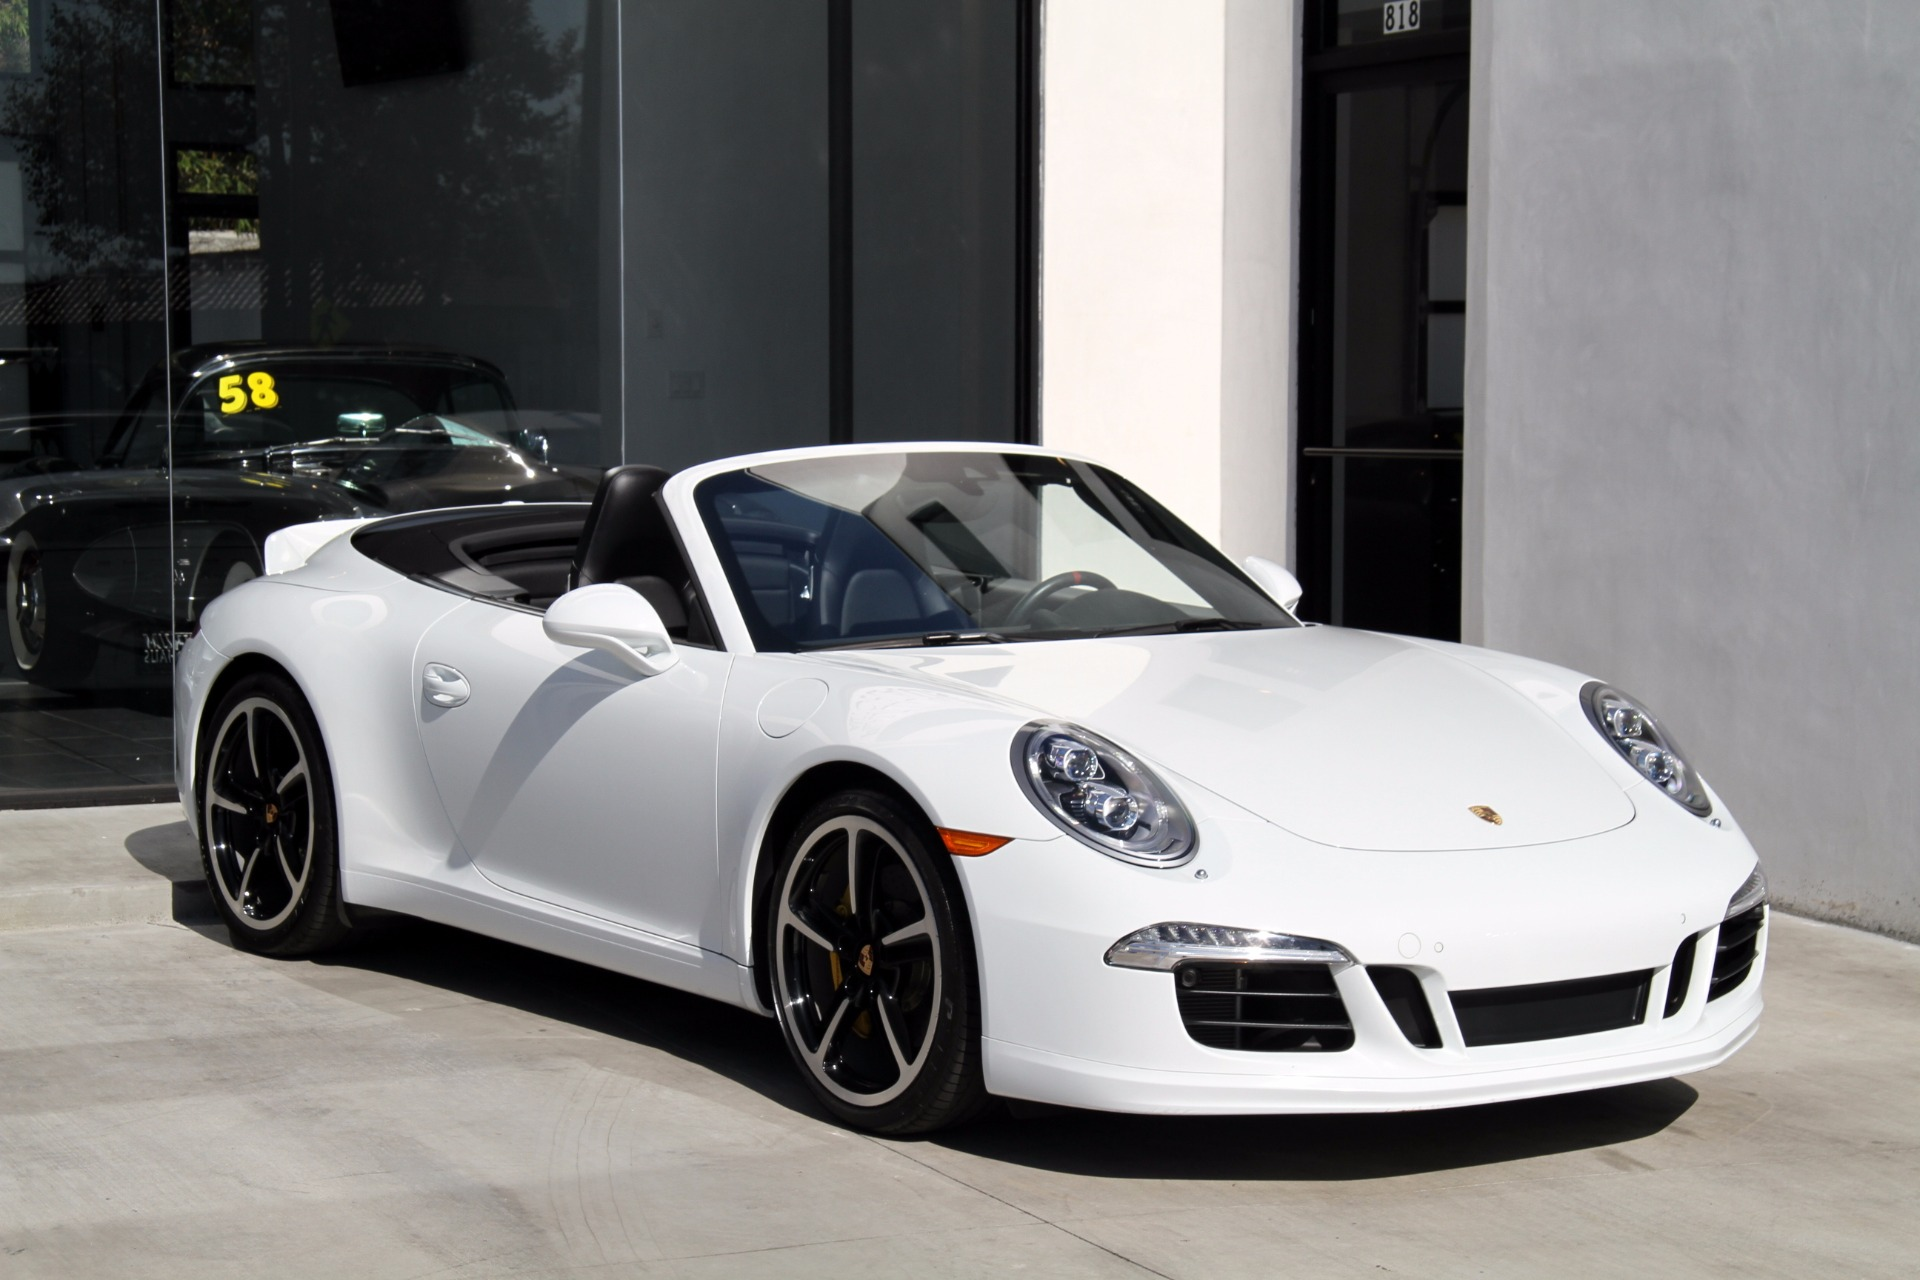 Free Vehicle History Report By Vin >> 2015 Porsche 911 Carrera S ** Sport Design Package ** Stock # 6022 for sale near Redondo Beach ...